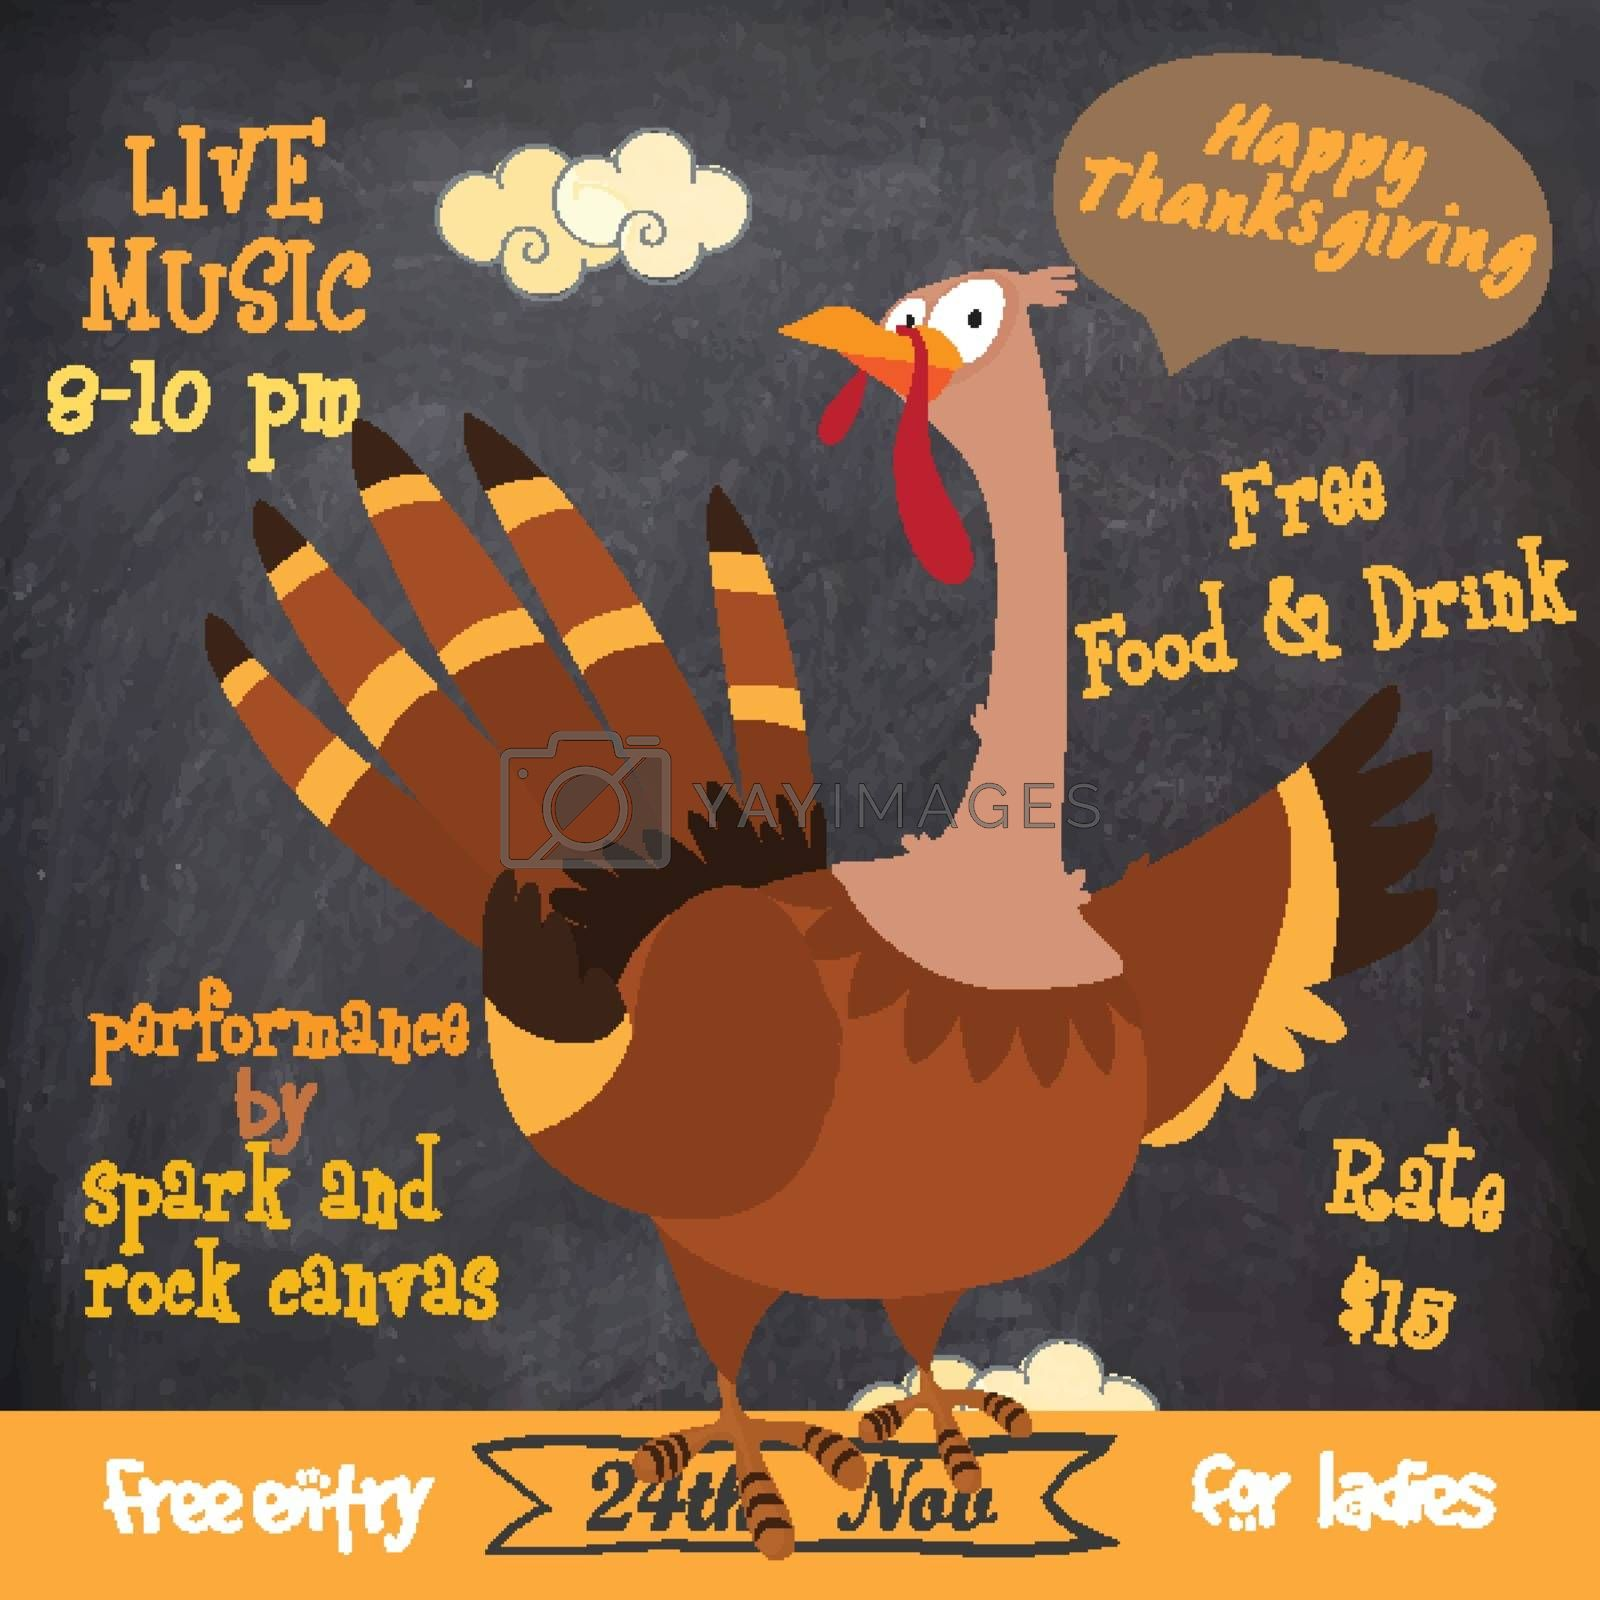 Creative invitation card with illustration of turkey bird on chalkboard background for Happy Thanksgiving Day celebration.